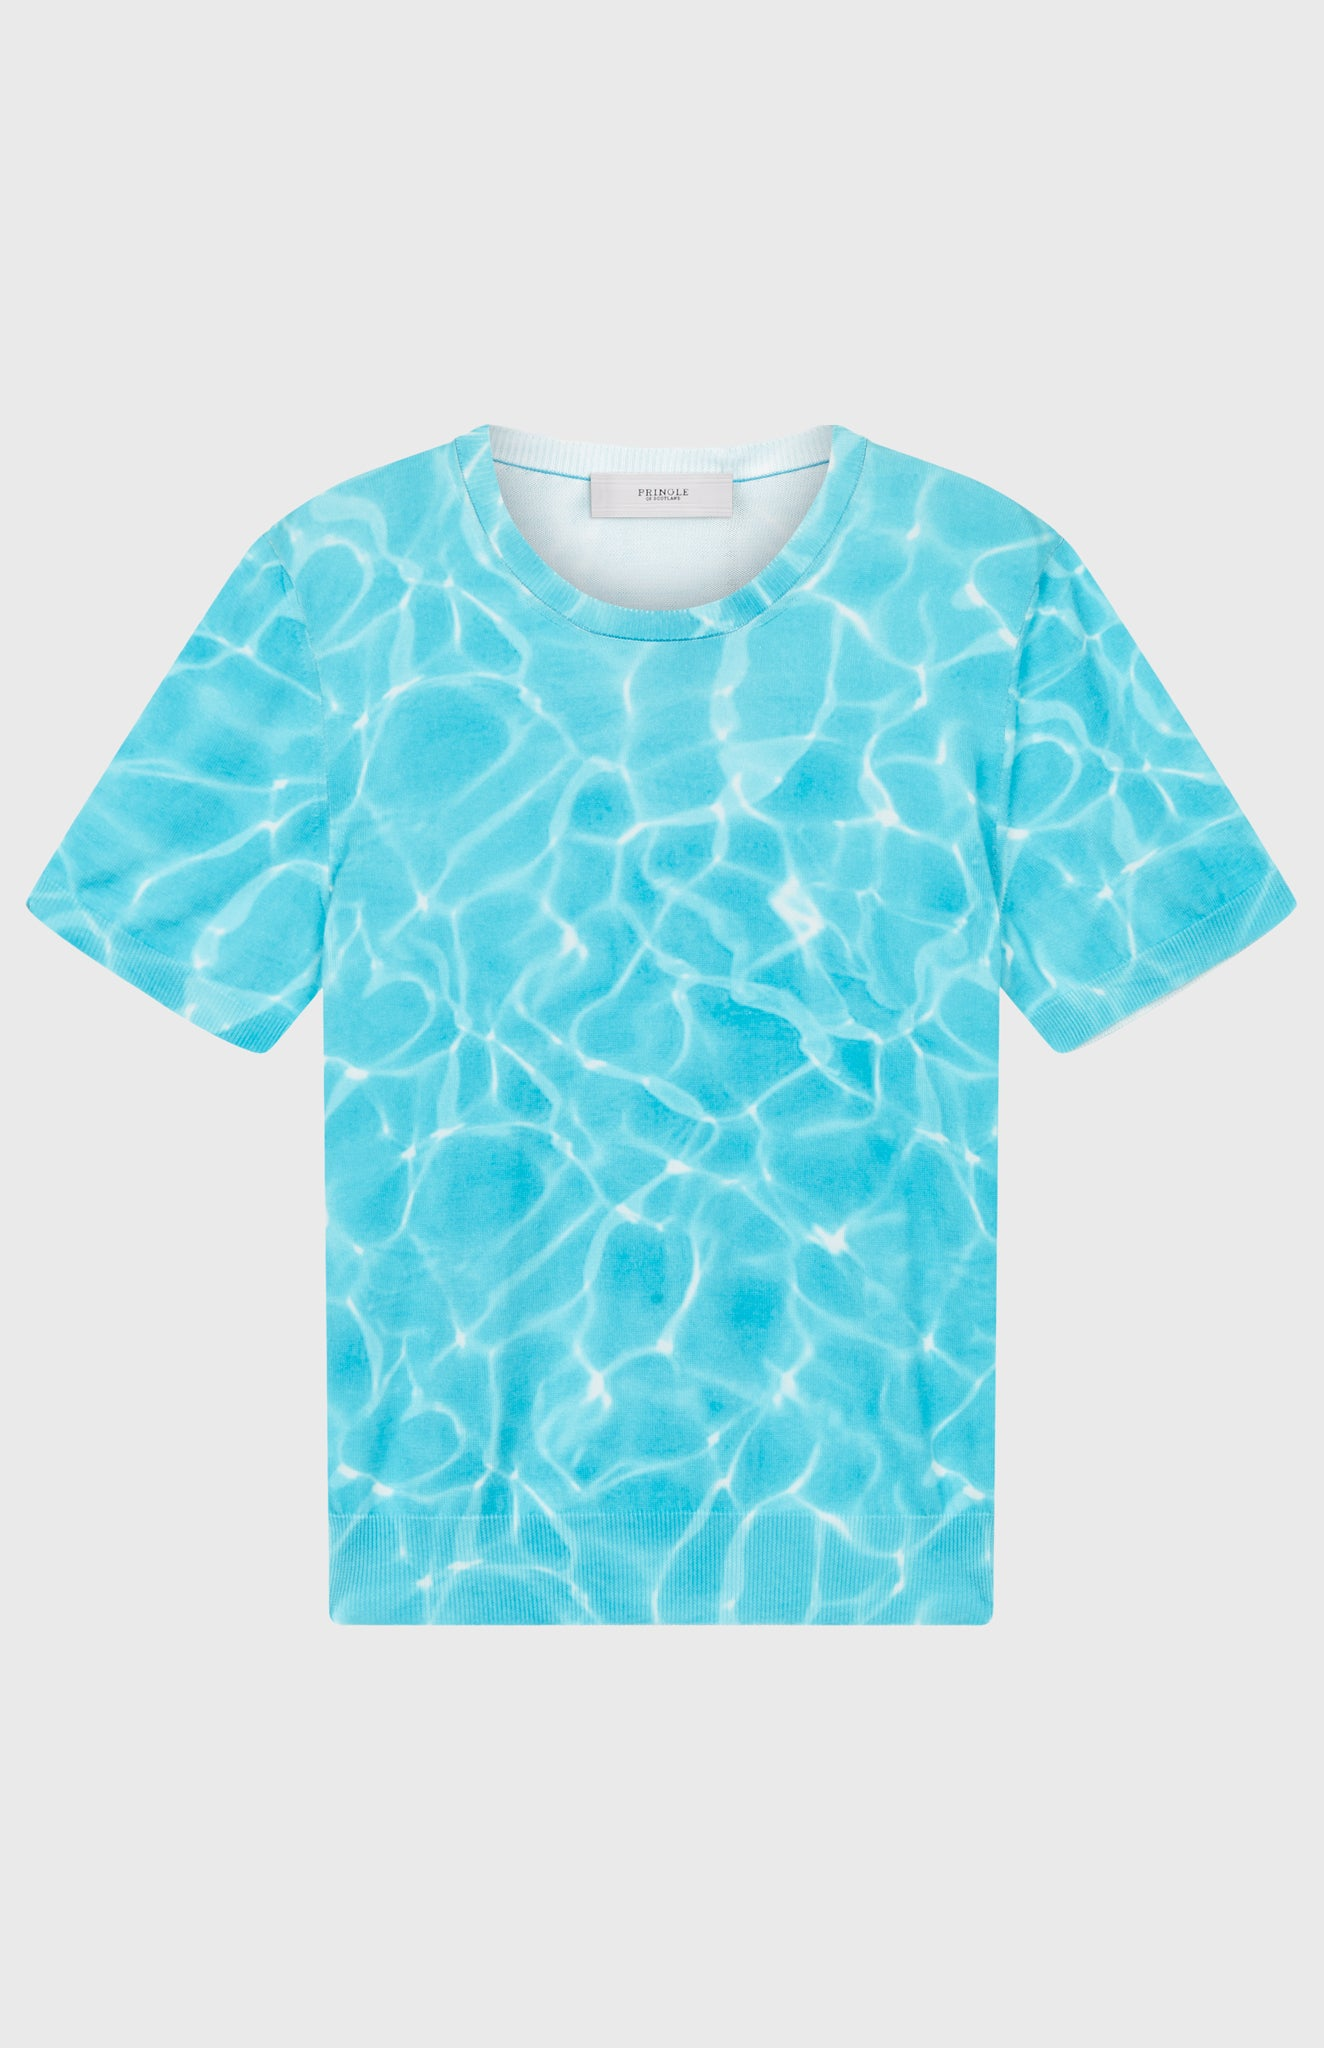 Reflections T-shirt In Optic White/Pool Blue